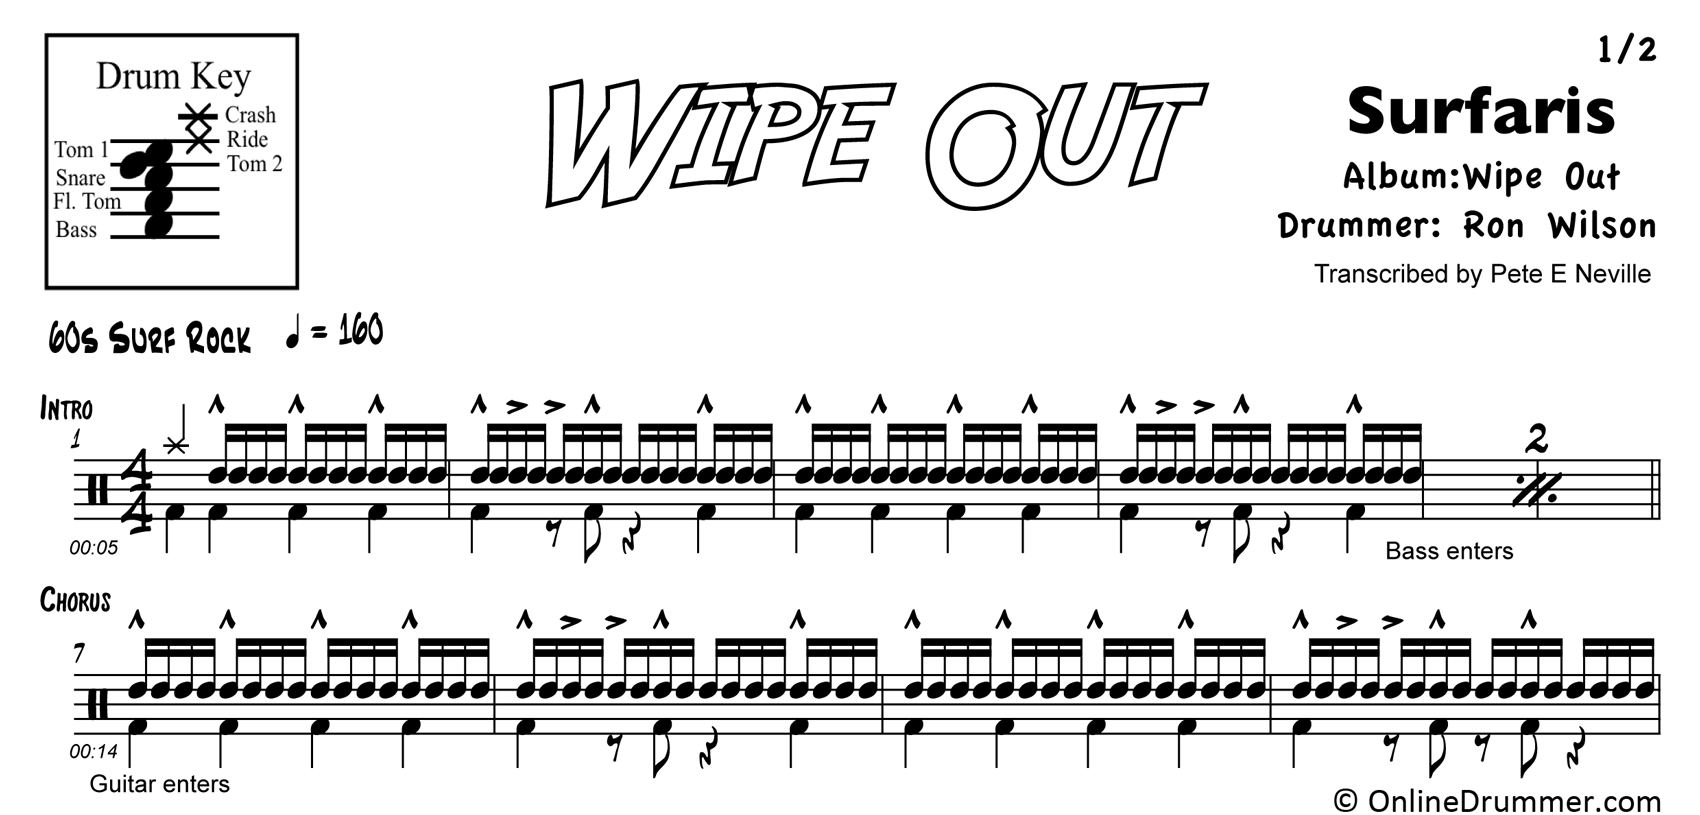 Wipe Out - The Surfaris - Drum Sheet Music